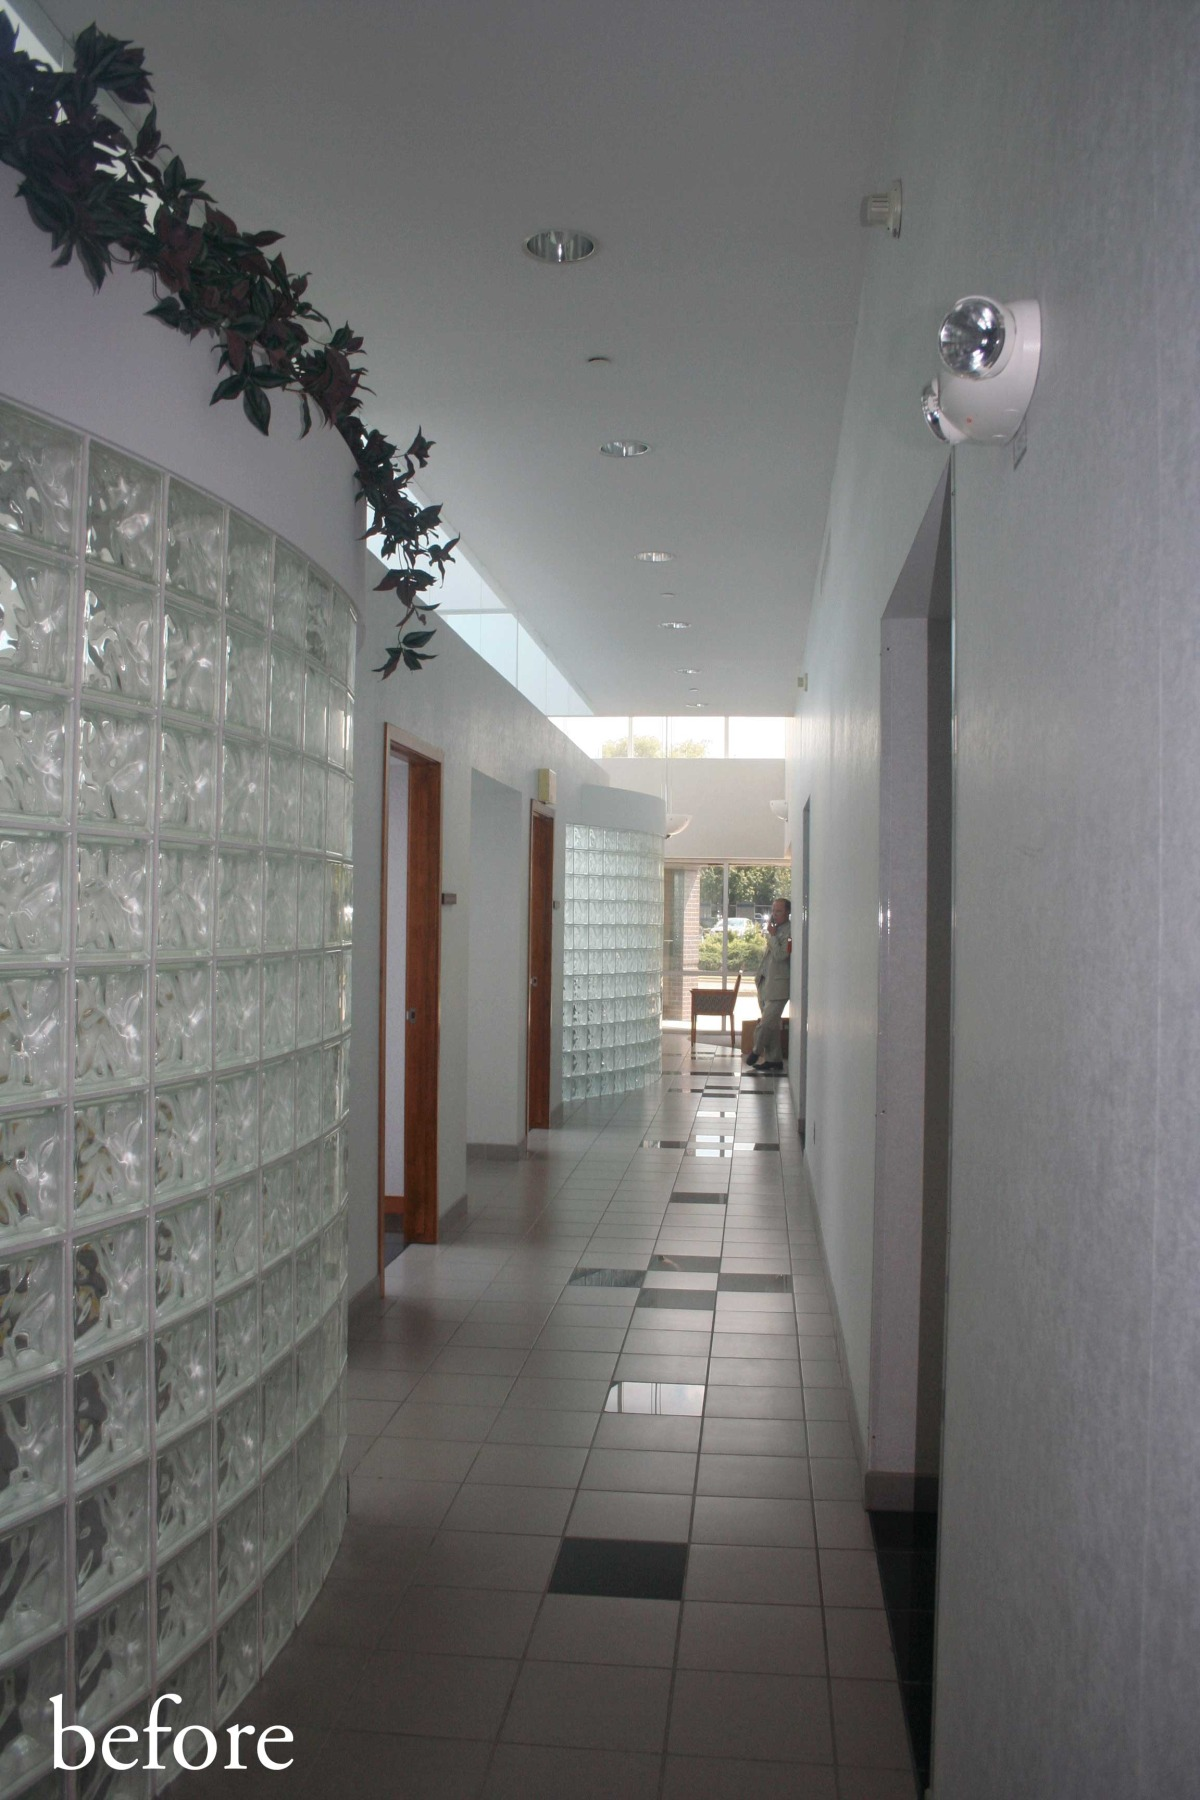 BEFORE - Corridor outside Conference Room